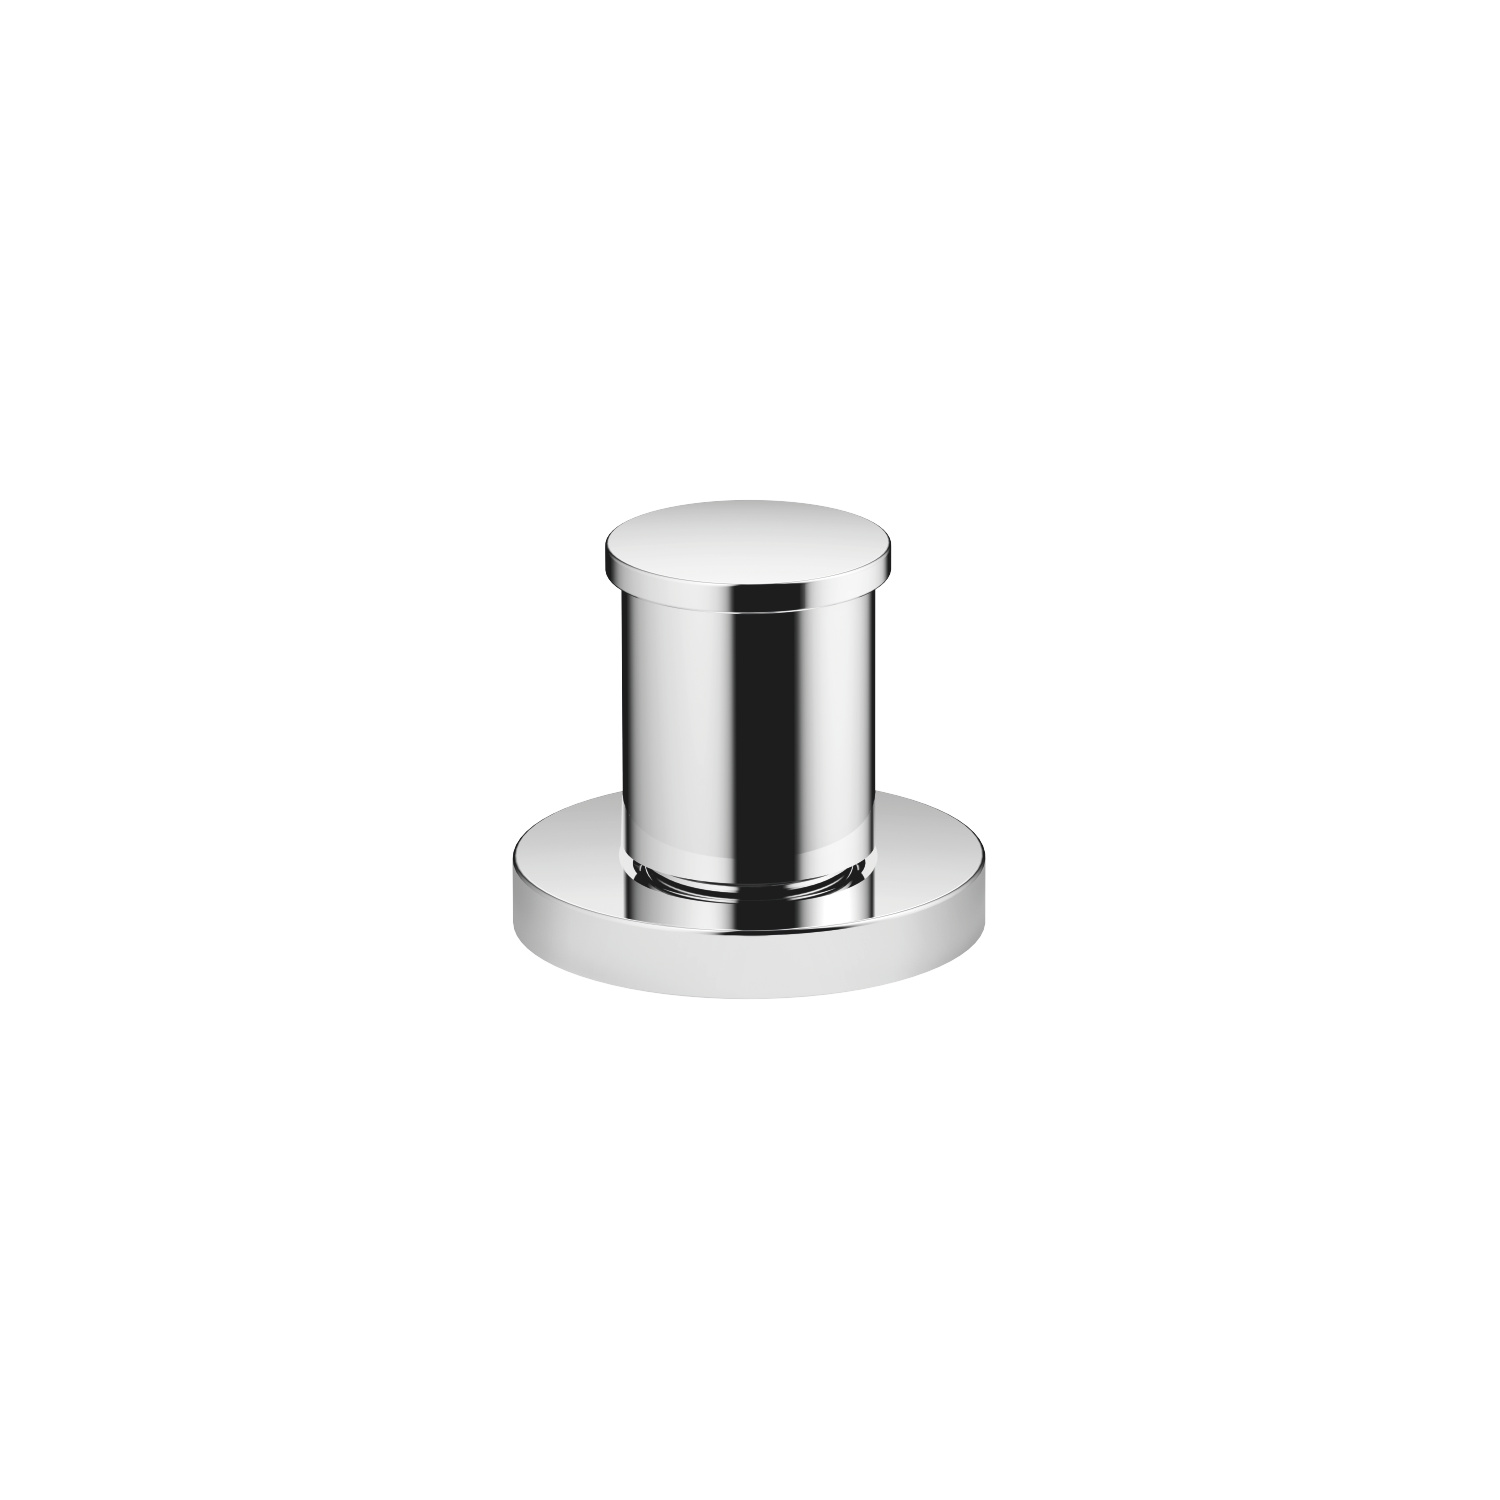 Two-way diverter for bath rim or tile edge installation - polished chrome